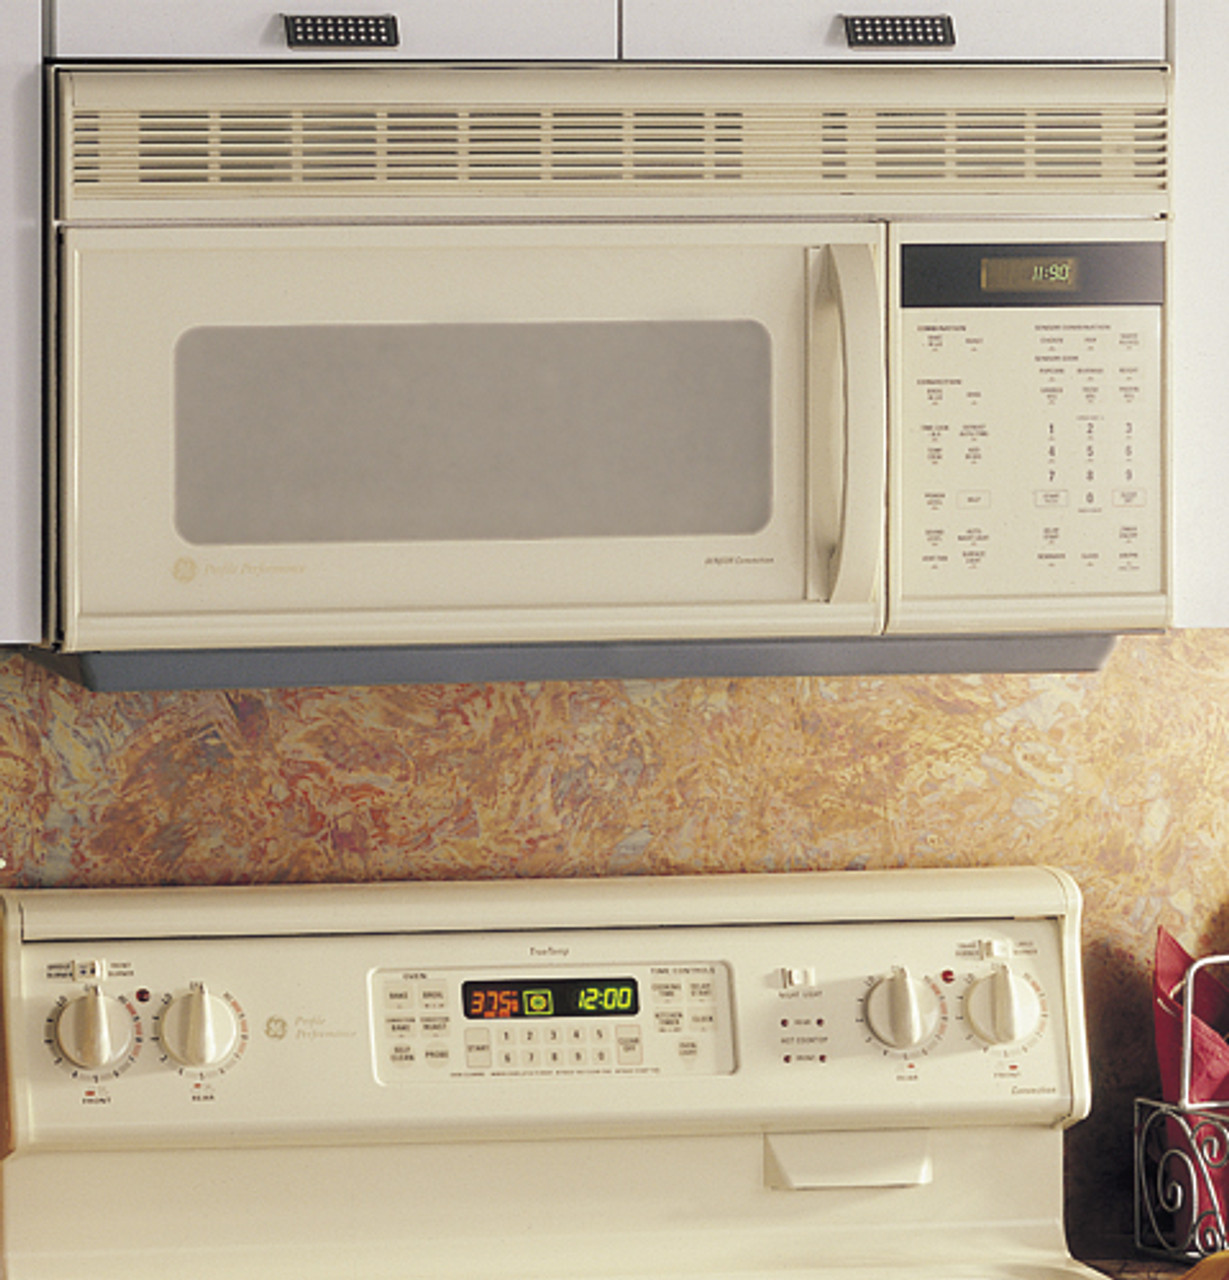 ge profile spacemaker oven with convection microwave cooking and outside venting jvm1190ay